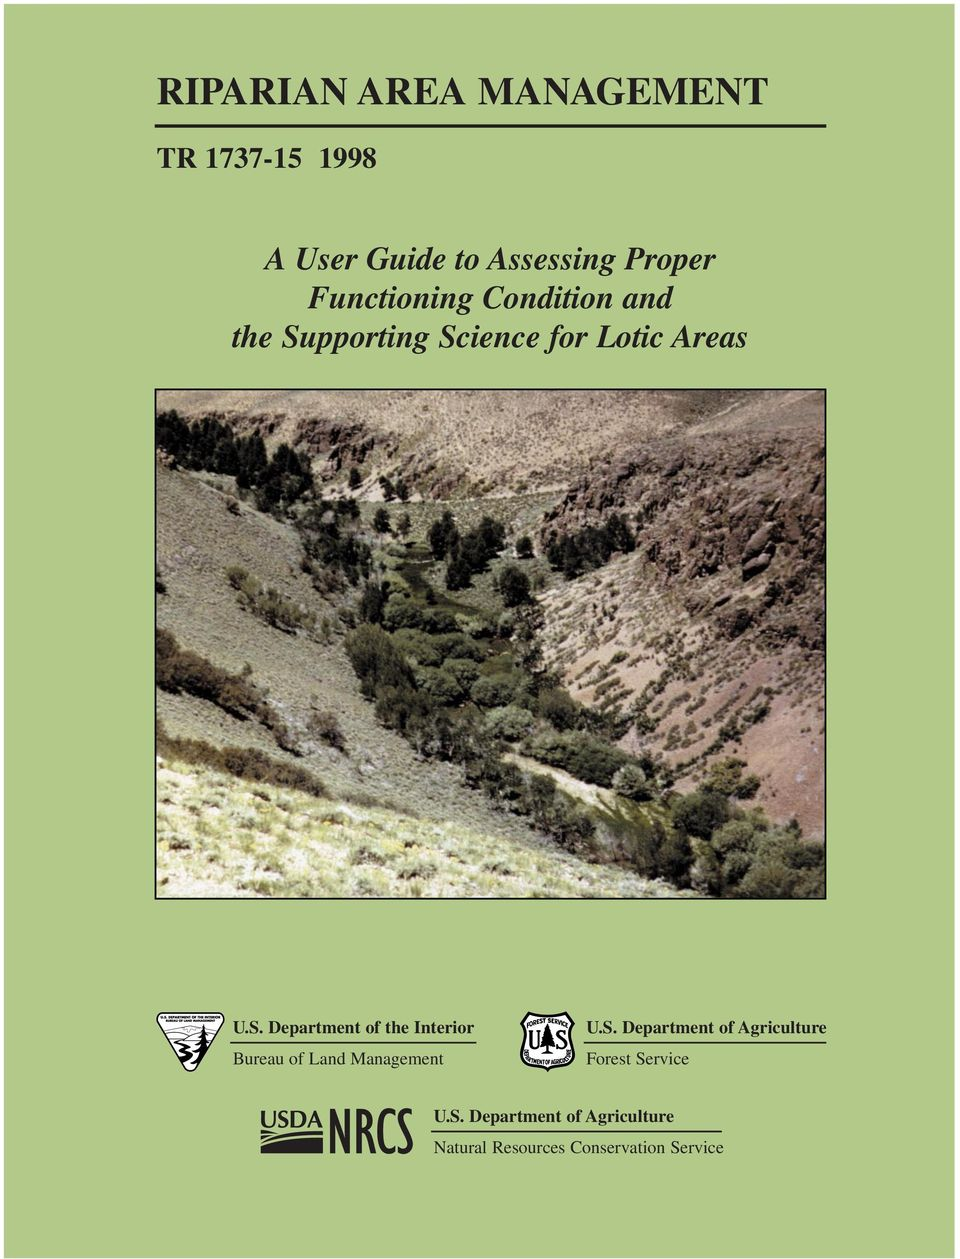 pporting Science for Lotic Areas U.S. Department of the Interior Bureau of Land Management U.